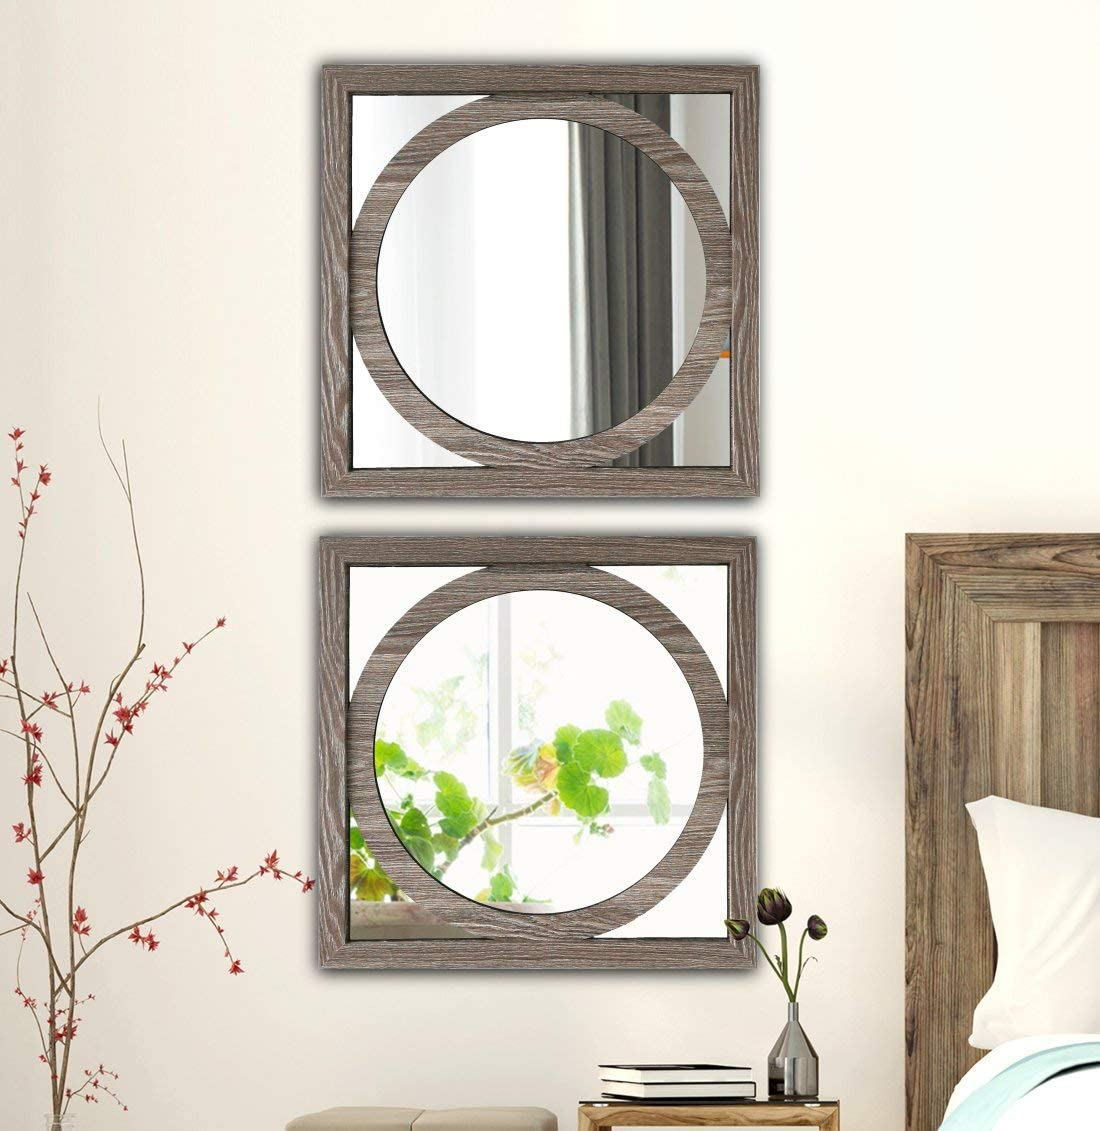 Square Barn Wood Rustic Style Framed Wall Decorative Mirror 20x20 inches O Round Modern DIY Fashion MDF Wood Material Wall-Mounted Mirrors